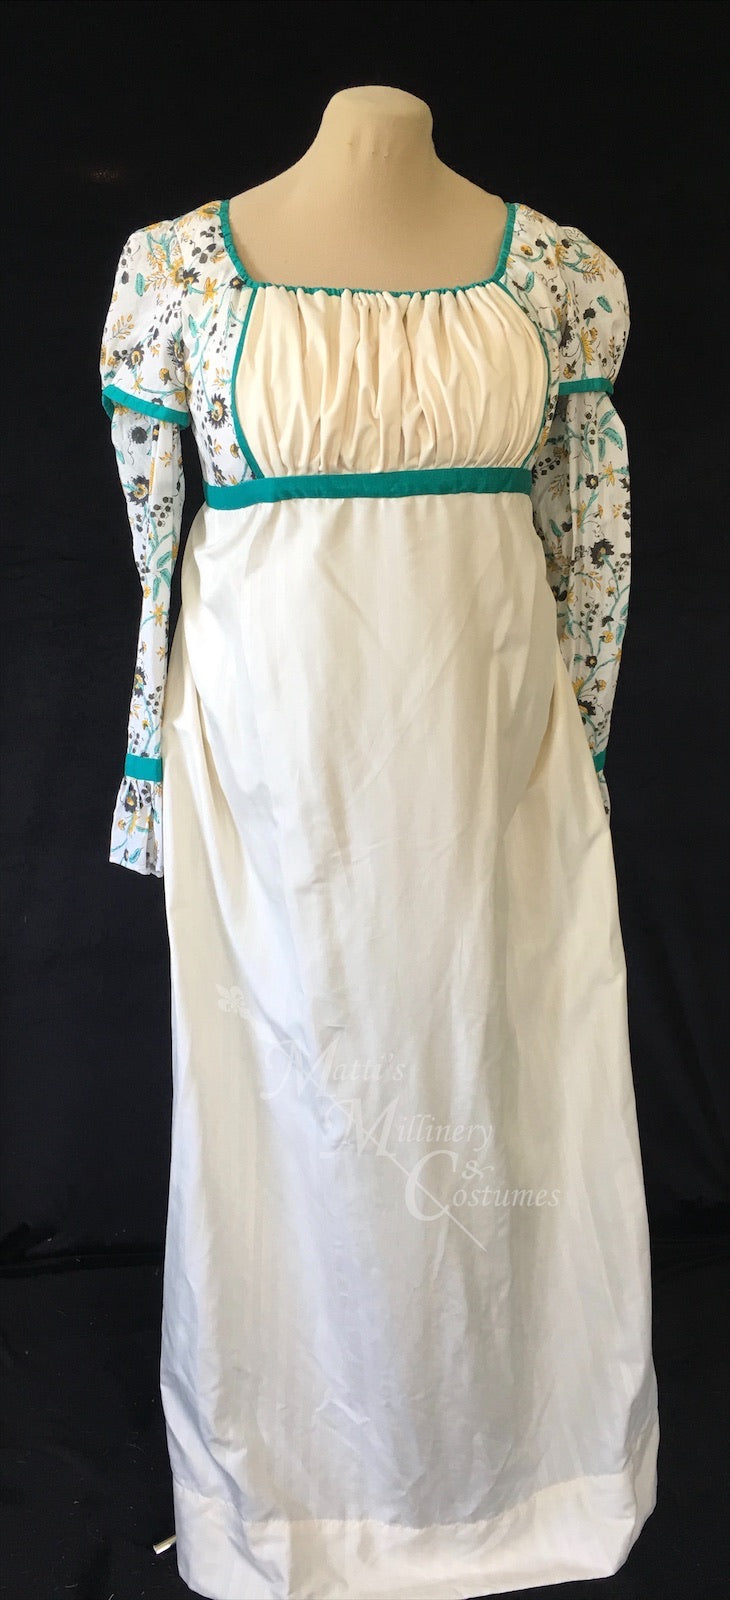 Teal Madeline Block Print Cotton Jane Austen Regency Day Dress Gown